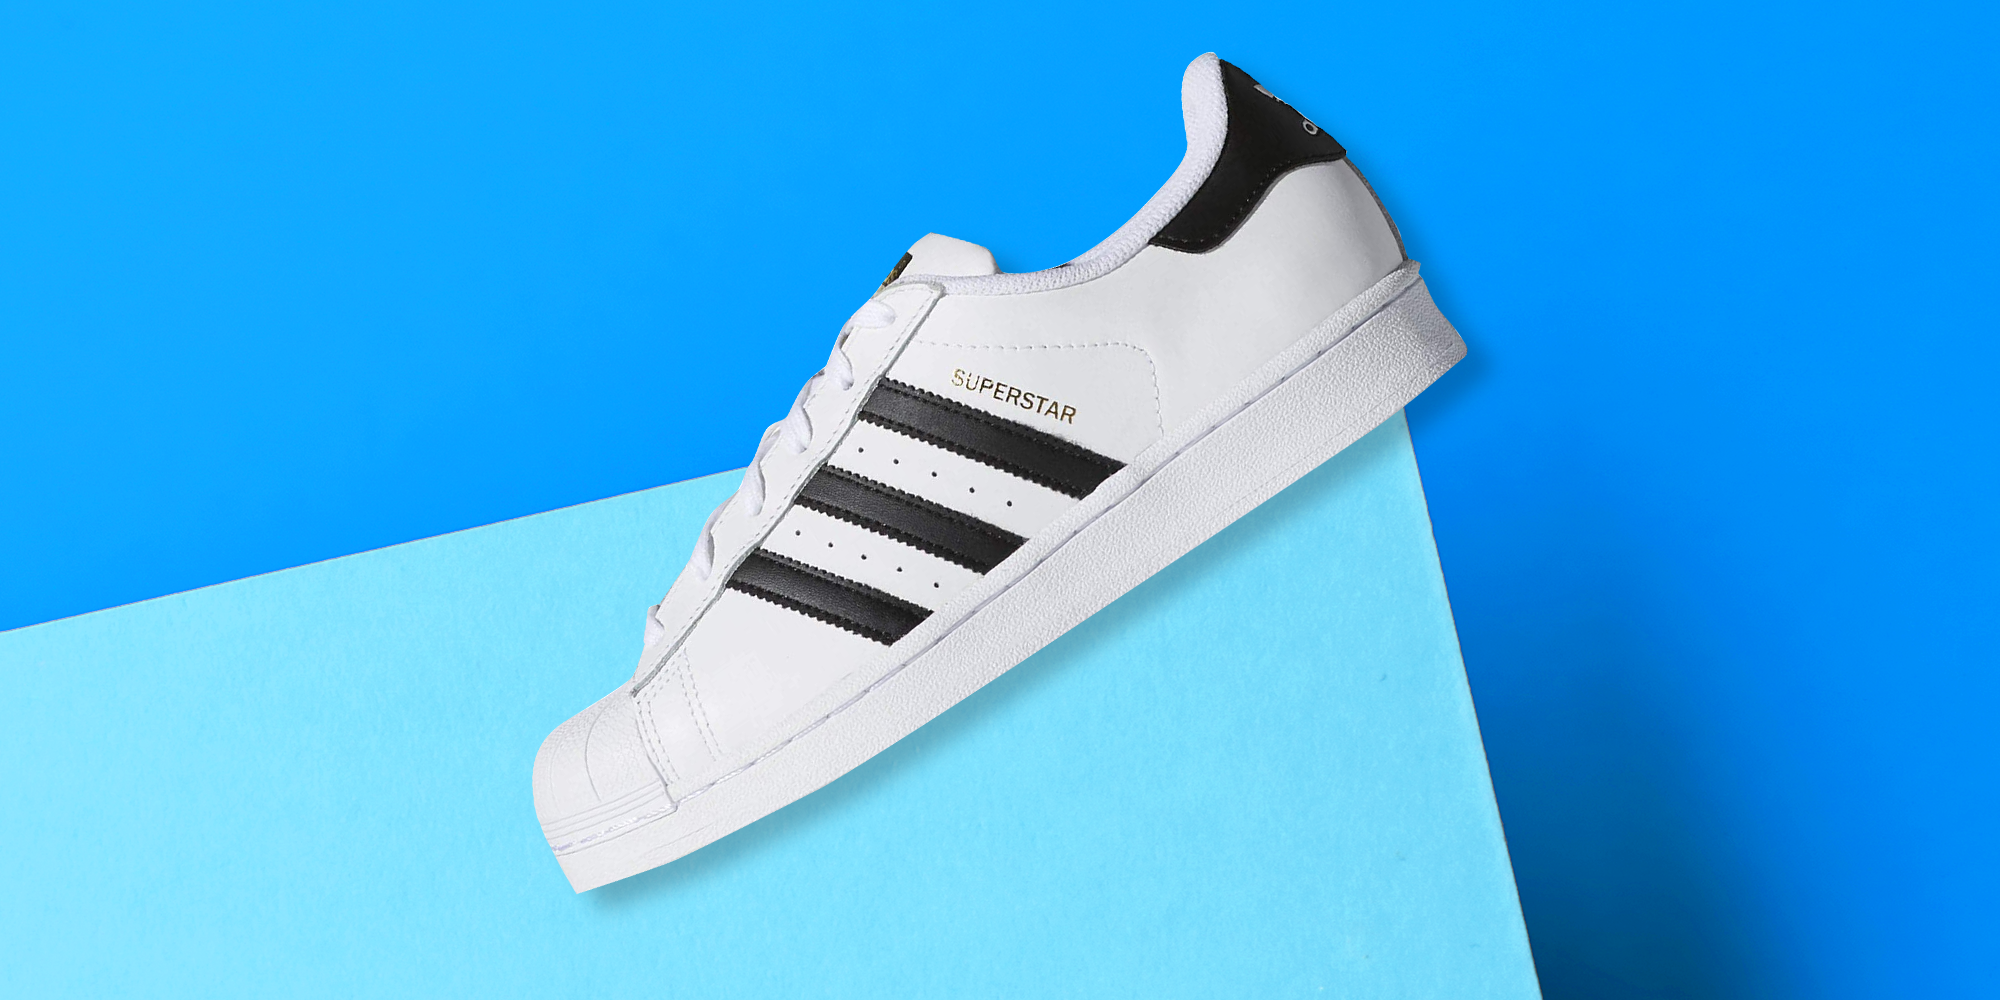 Corte de pelo Oral personal  Adidas Superstar Sneakers Are On Sale For 25% Off On Amazon